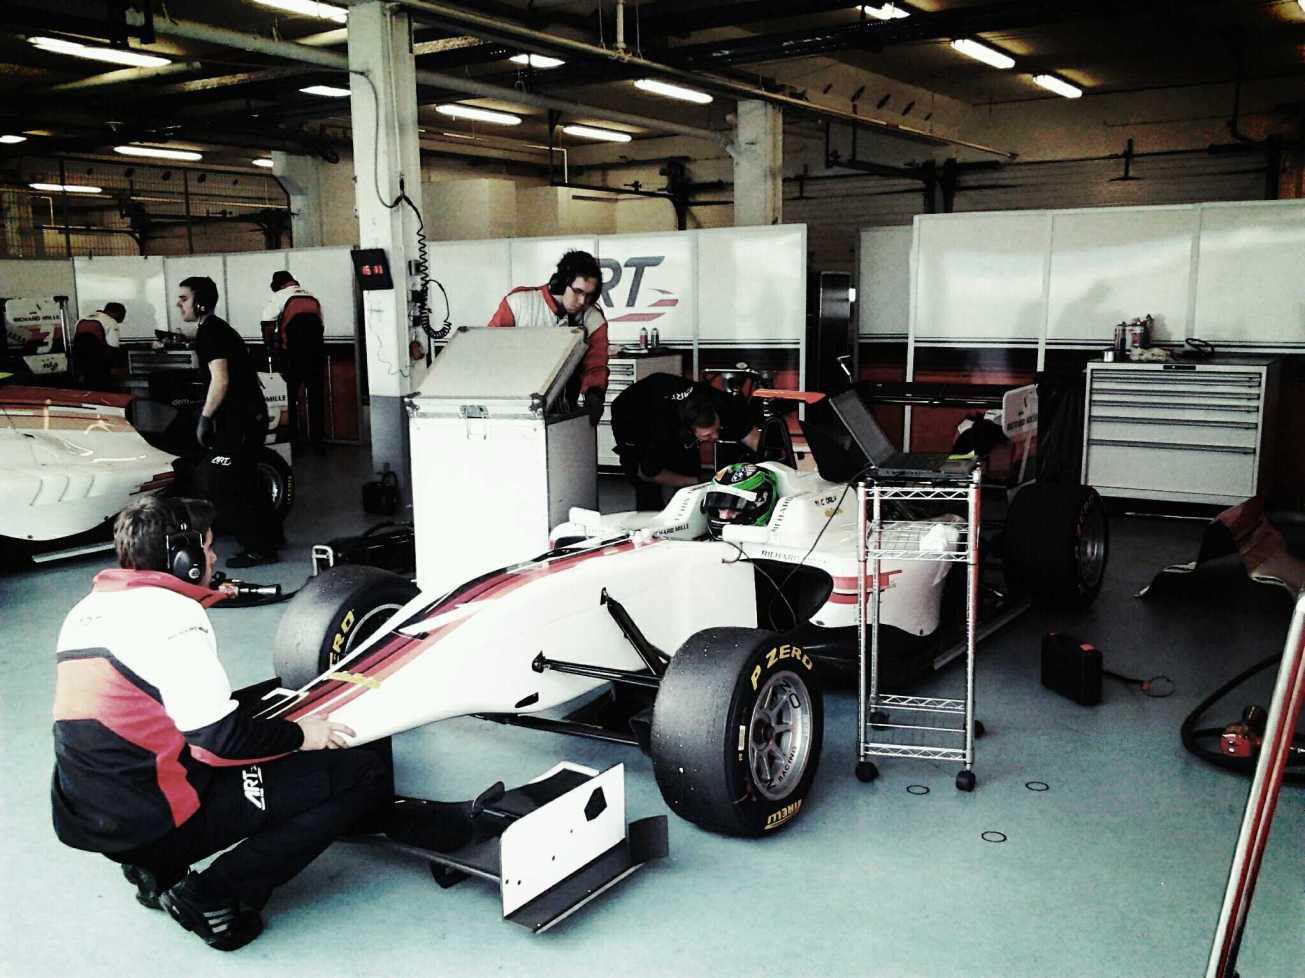 Conor in the GP3 Dallara circa 2013